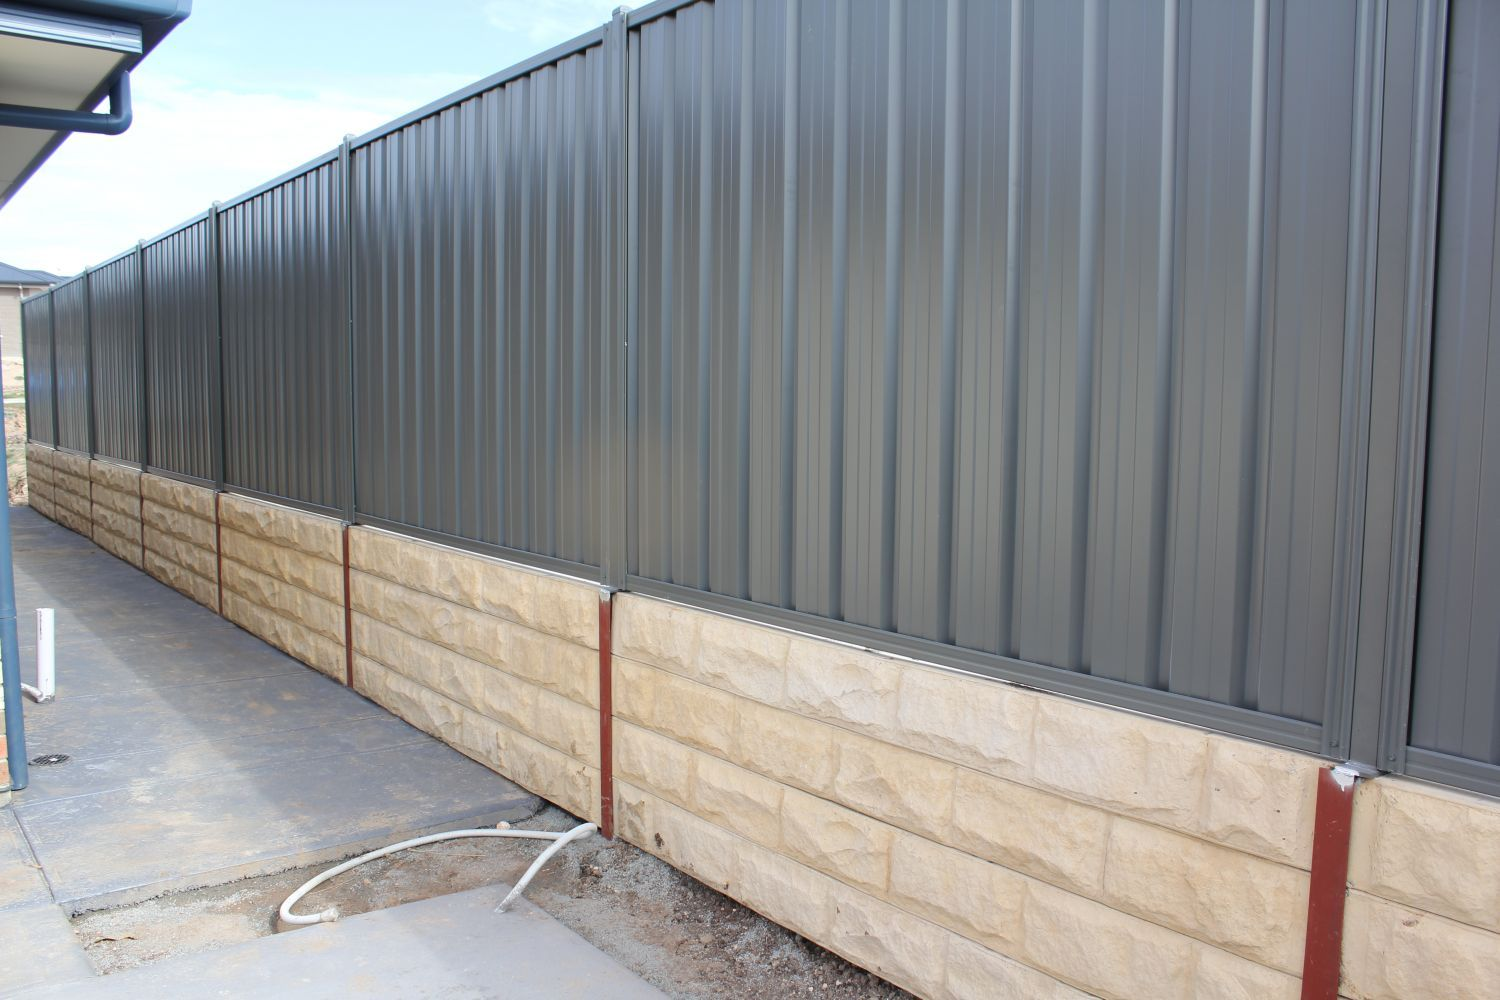 Patterned Sleeper Retaining Wall With Good Neighbour